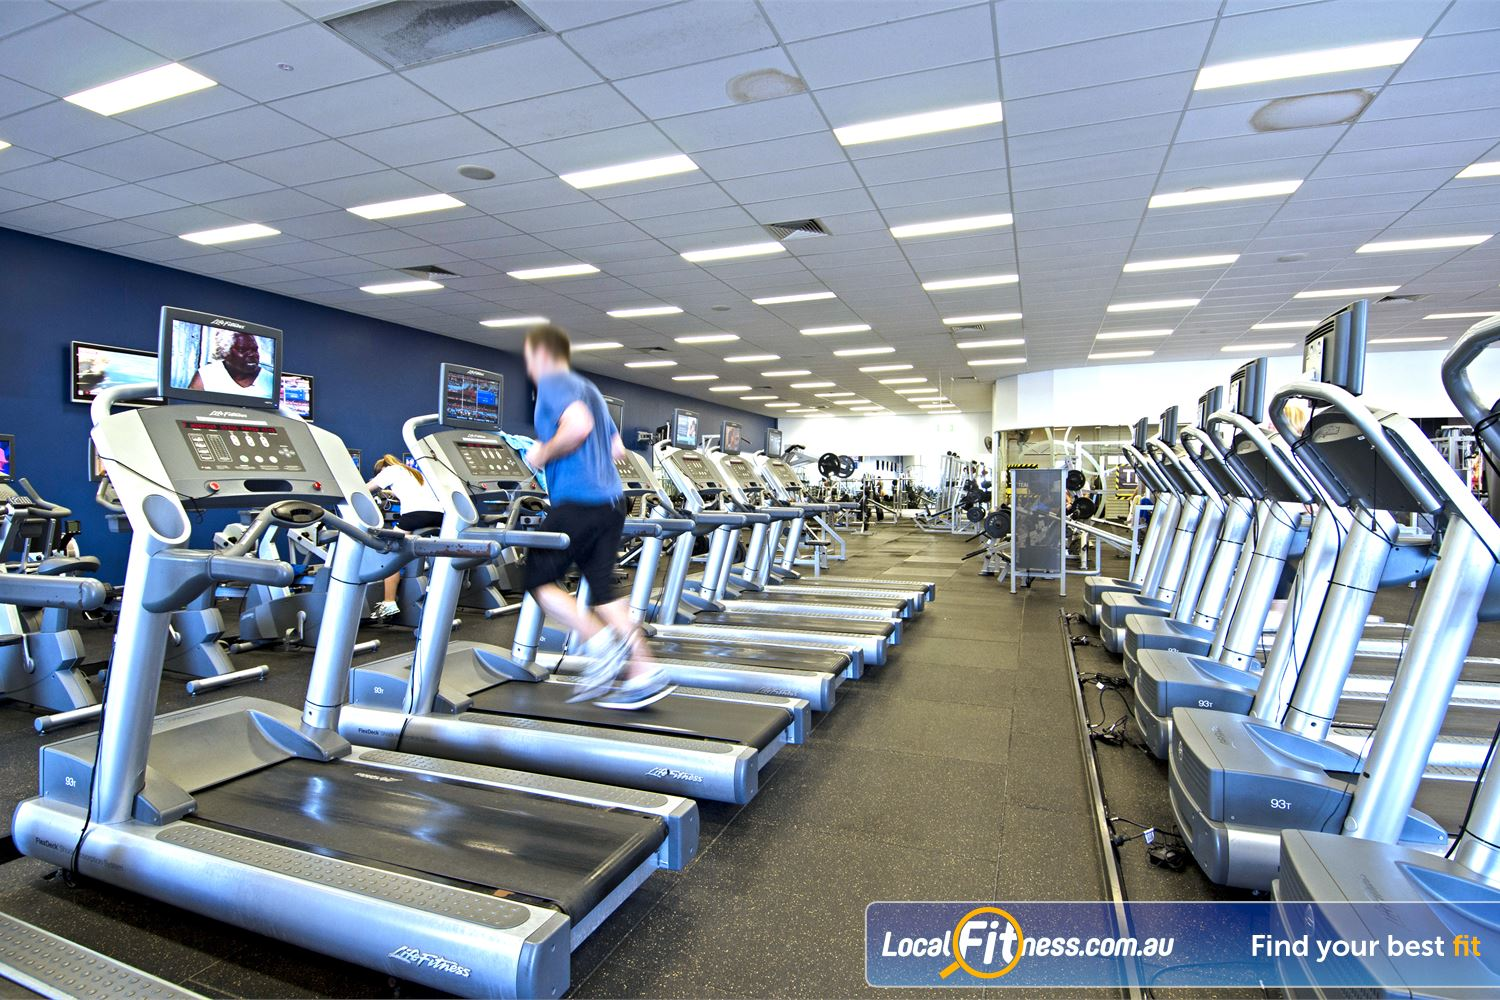 Goodlife Health Clubs Near Coochiemudlo Island Tune into your favorite shows on your personalised LCD screen or cardio theatre.